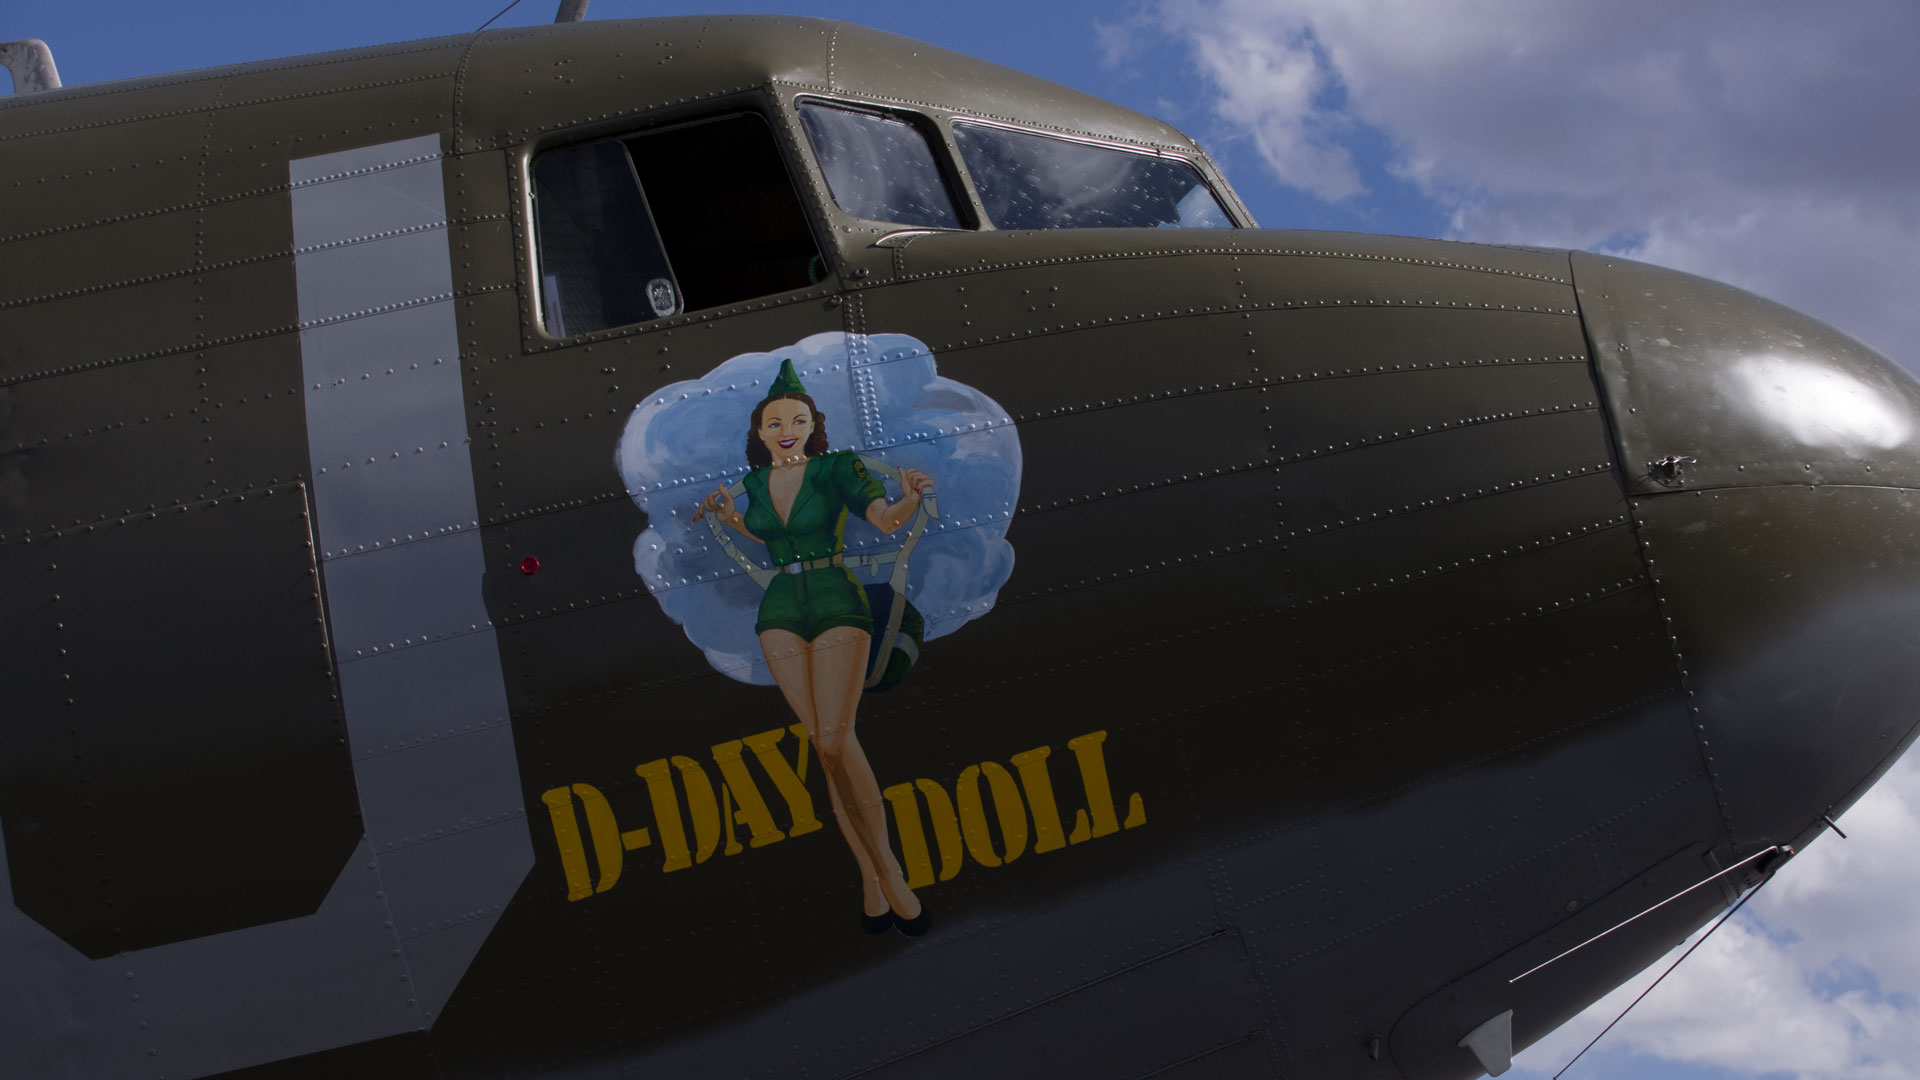 The D-Day Doll WWII plane in Tucson.